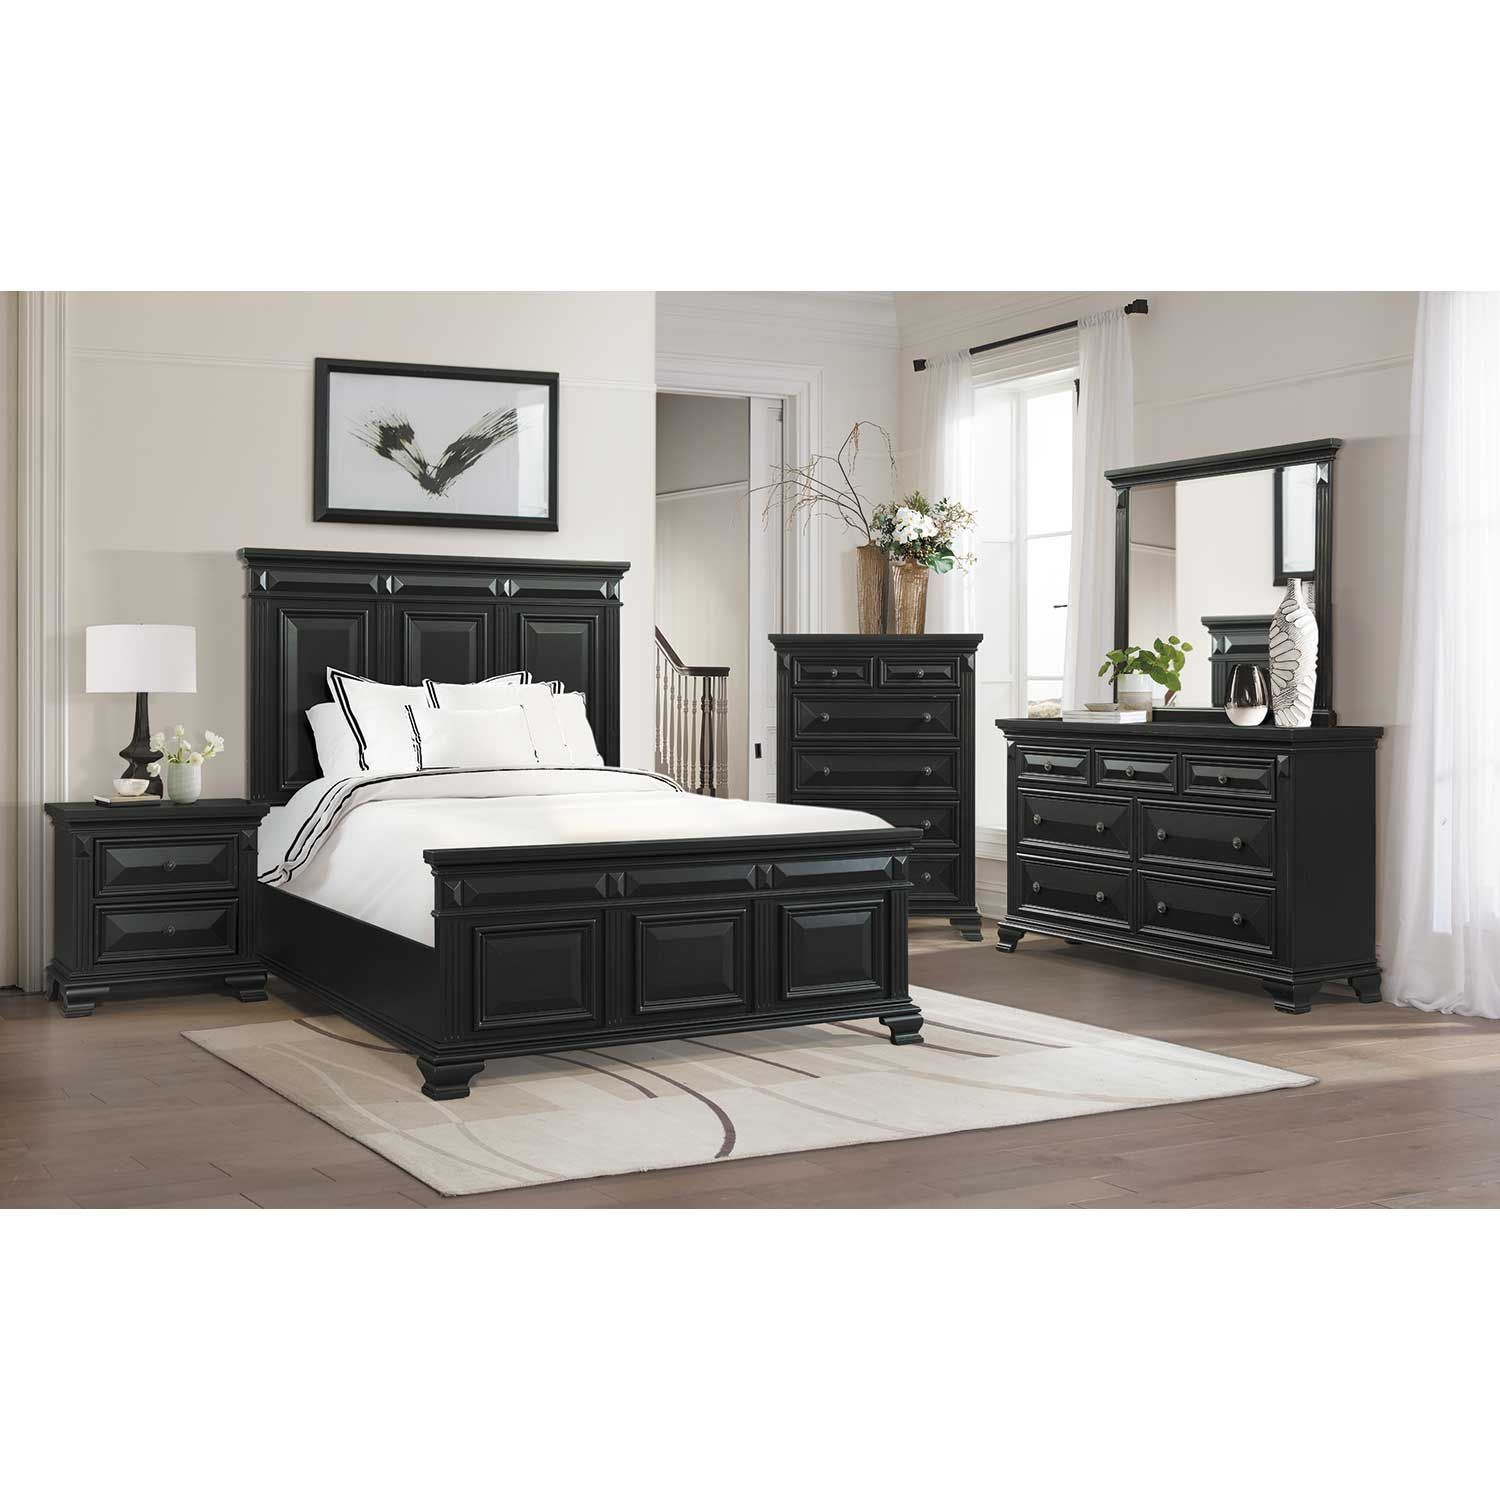 Calloway 5 Piece Bedroom Set